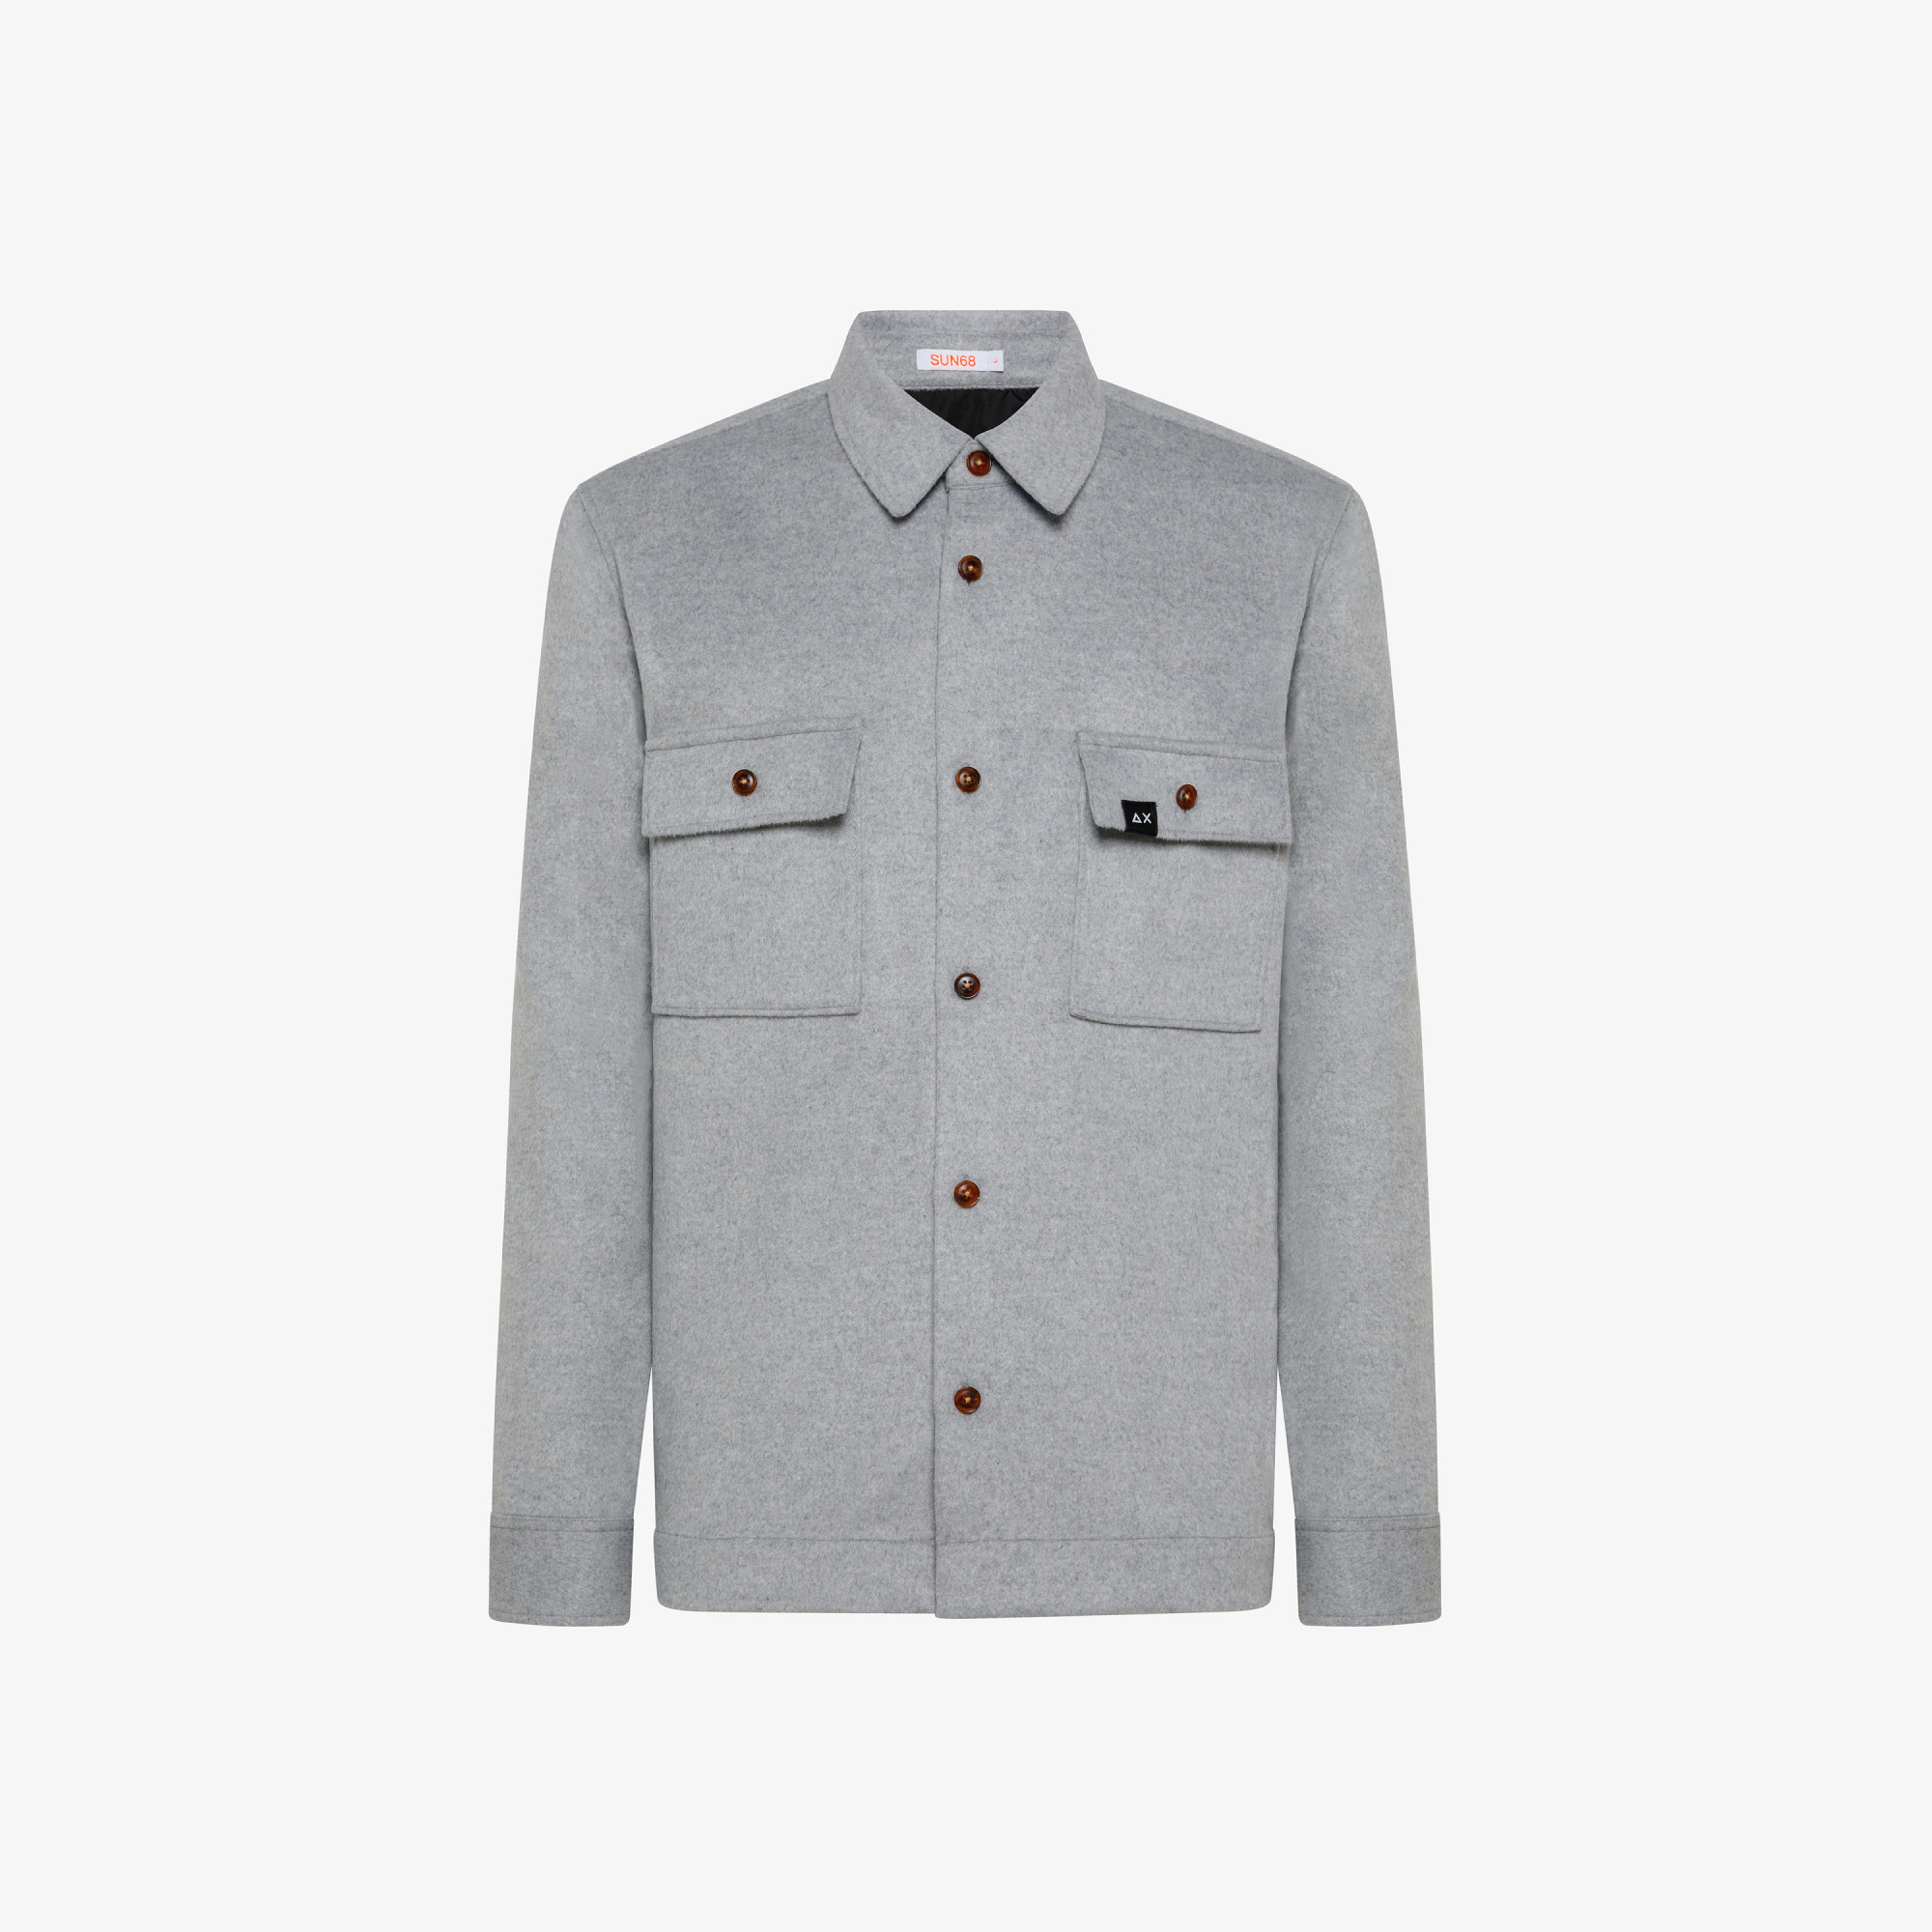 OVERSHIRT WITH POCKET ON CHEST L/S LIGHT GREY